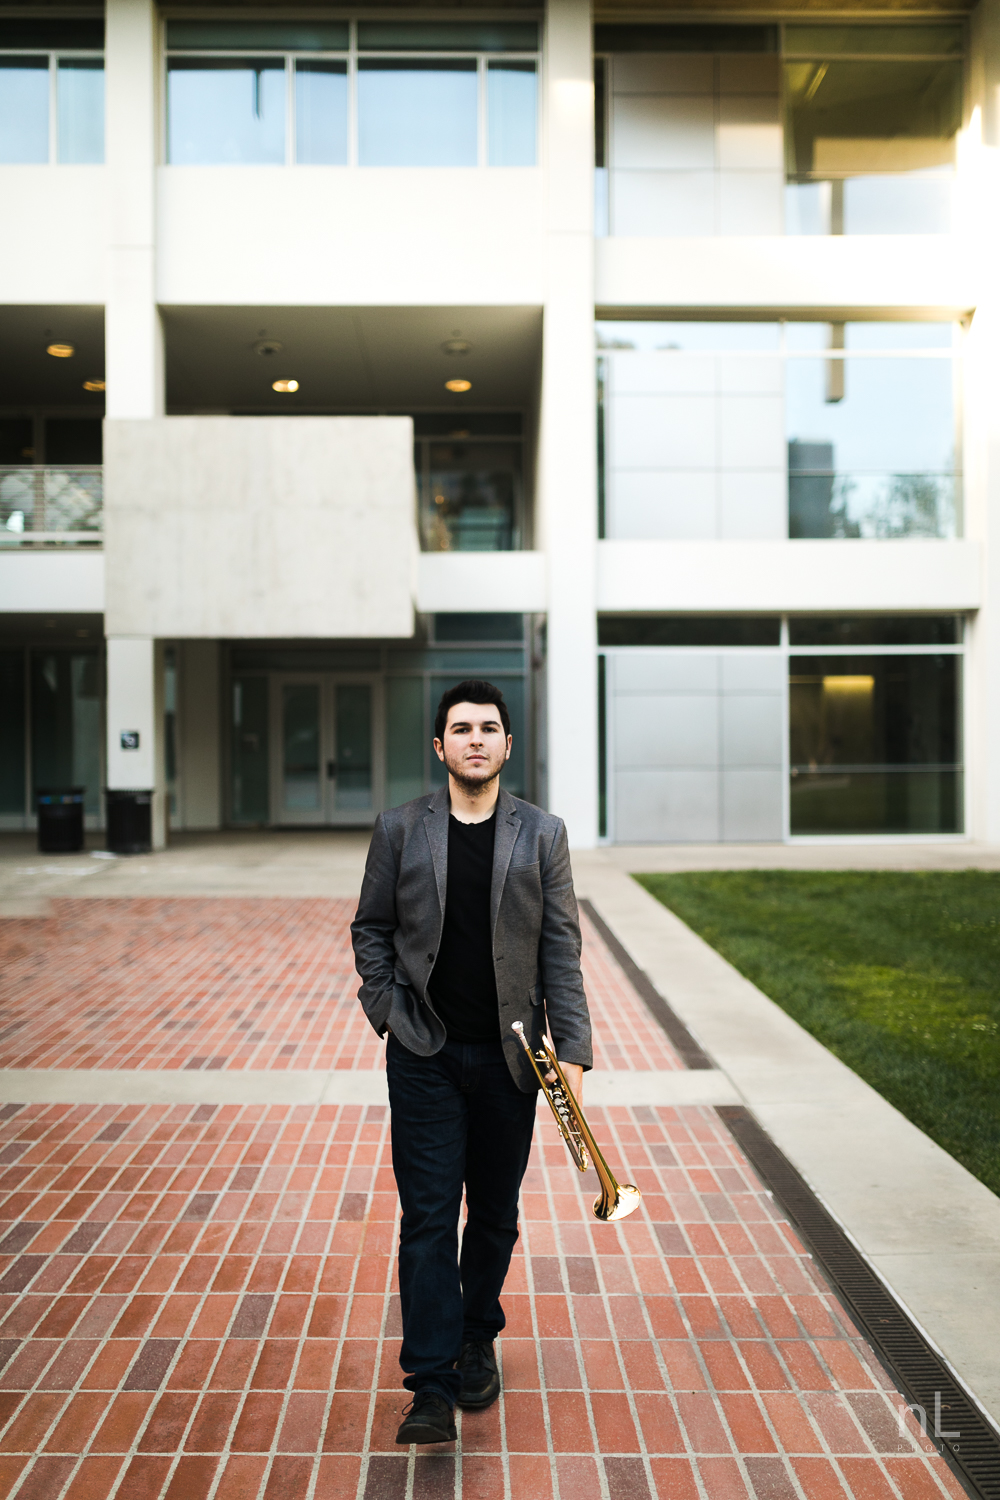 los-angeles-musician-portraits-trumpet-player-ucla-walking-down-path